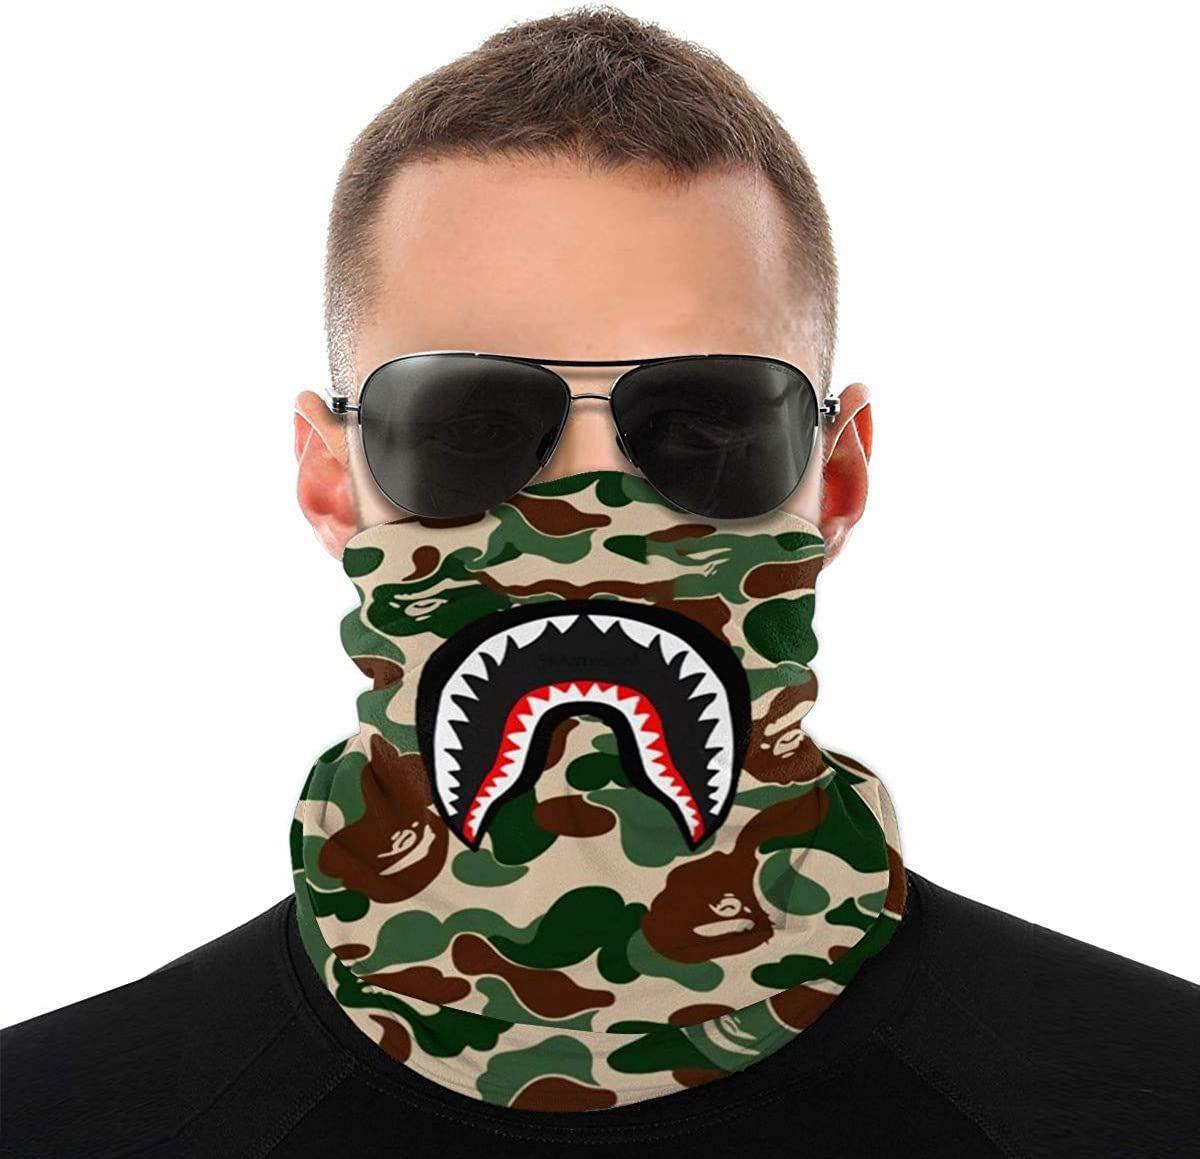 Shark Graphic Variety Turban Face Protection Mouth Cover Bandanas For Dust, Outdoors, Sports Shark